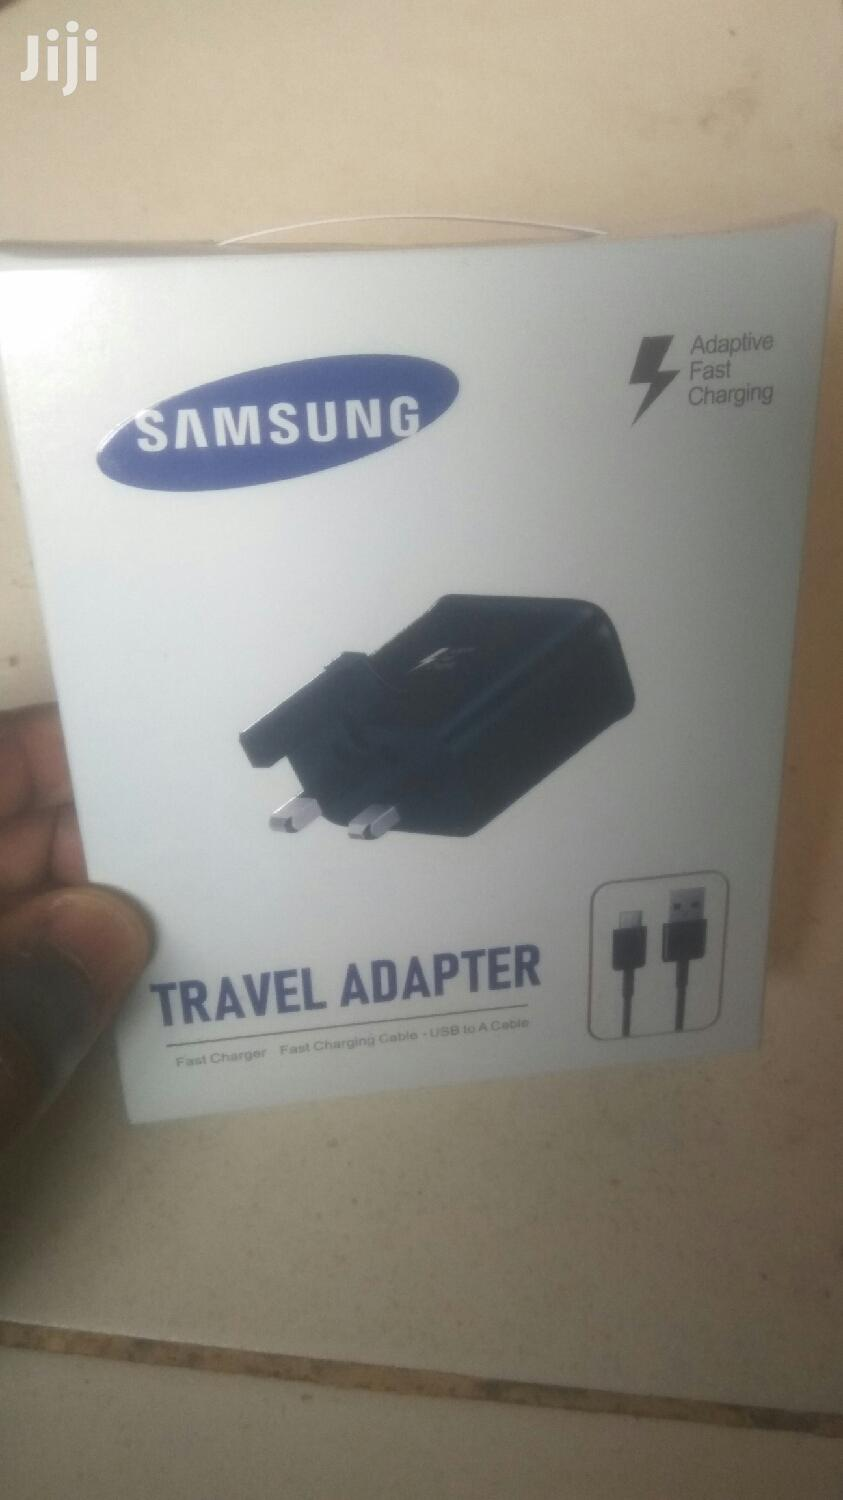 Samsung Original Charger | Accessories for Mobile Phones & Tablets for sale in Moshi Urban, Kilimanjaro Region, Tanzania